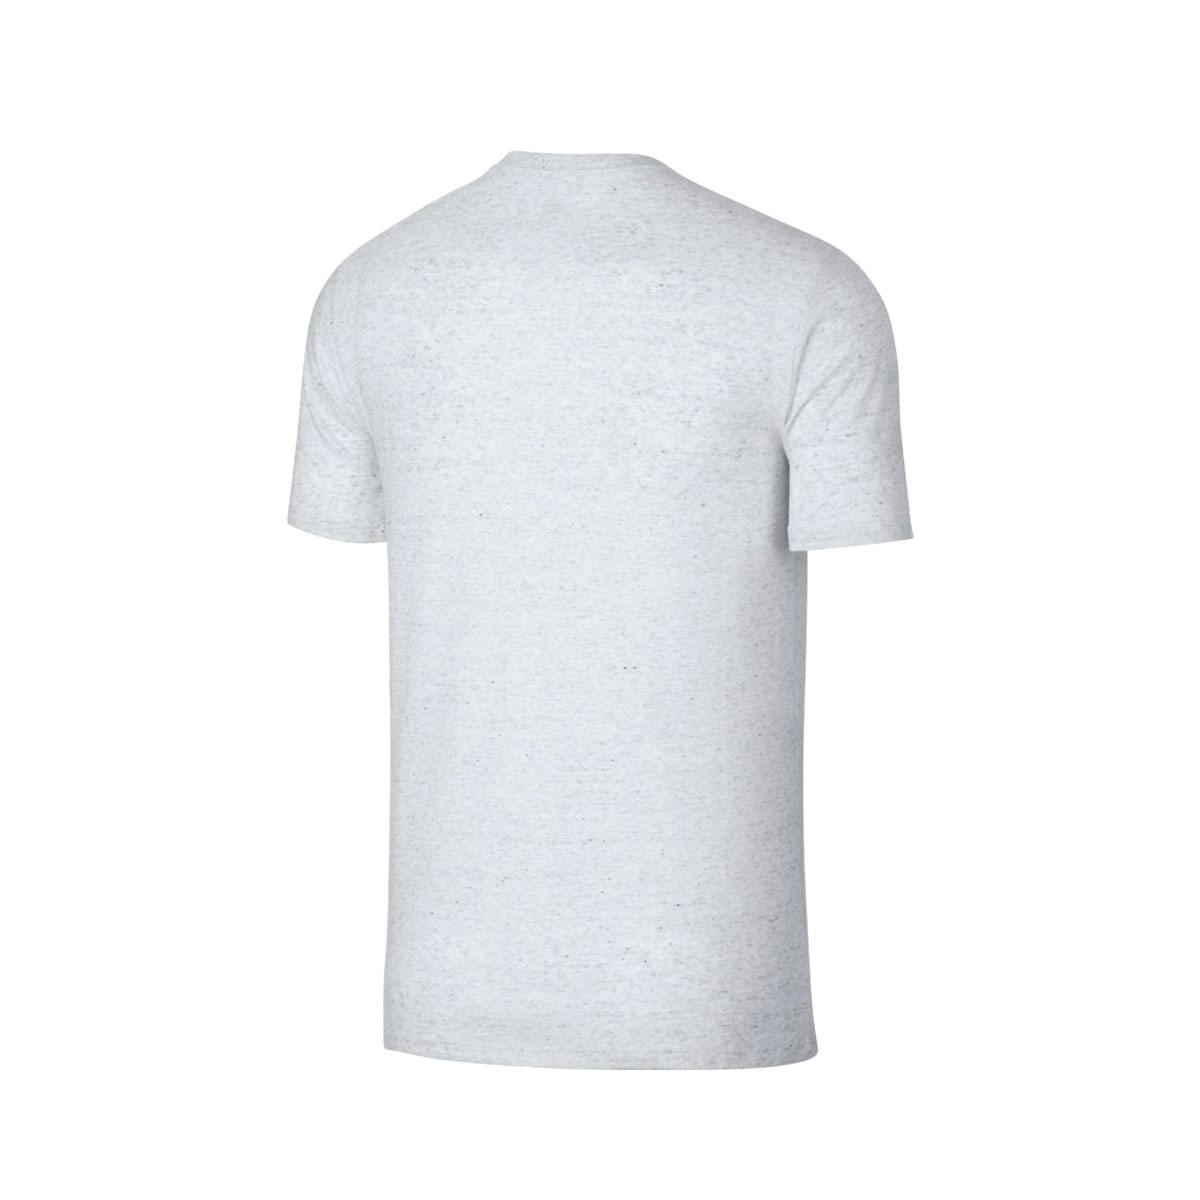 8030b518f955 NIKE AS M NSW TEE CNCPT RED 2 (Nike concept red T-shirt 2) WHITE WHITE  18SU-I